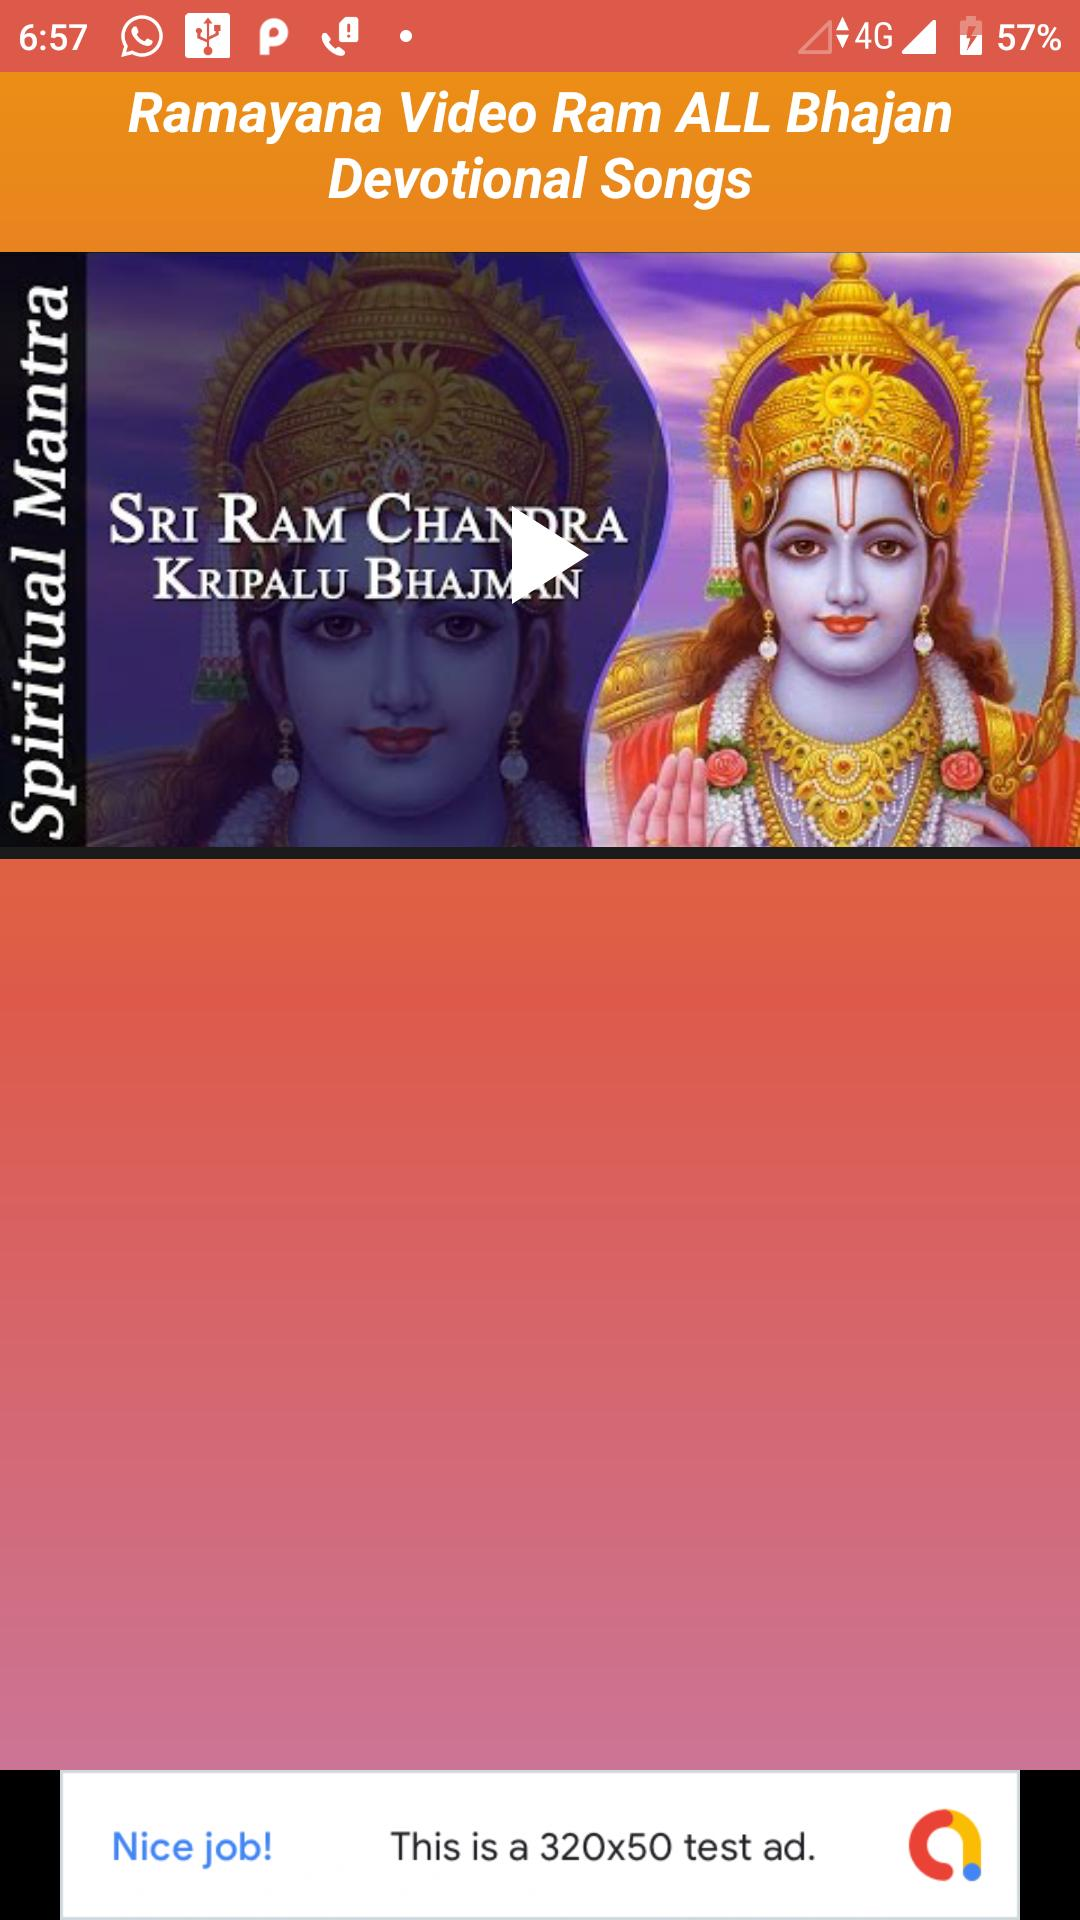 Ramayana Video App Ram Bhajan Songs for Android - APK Download